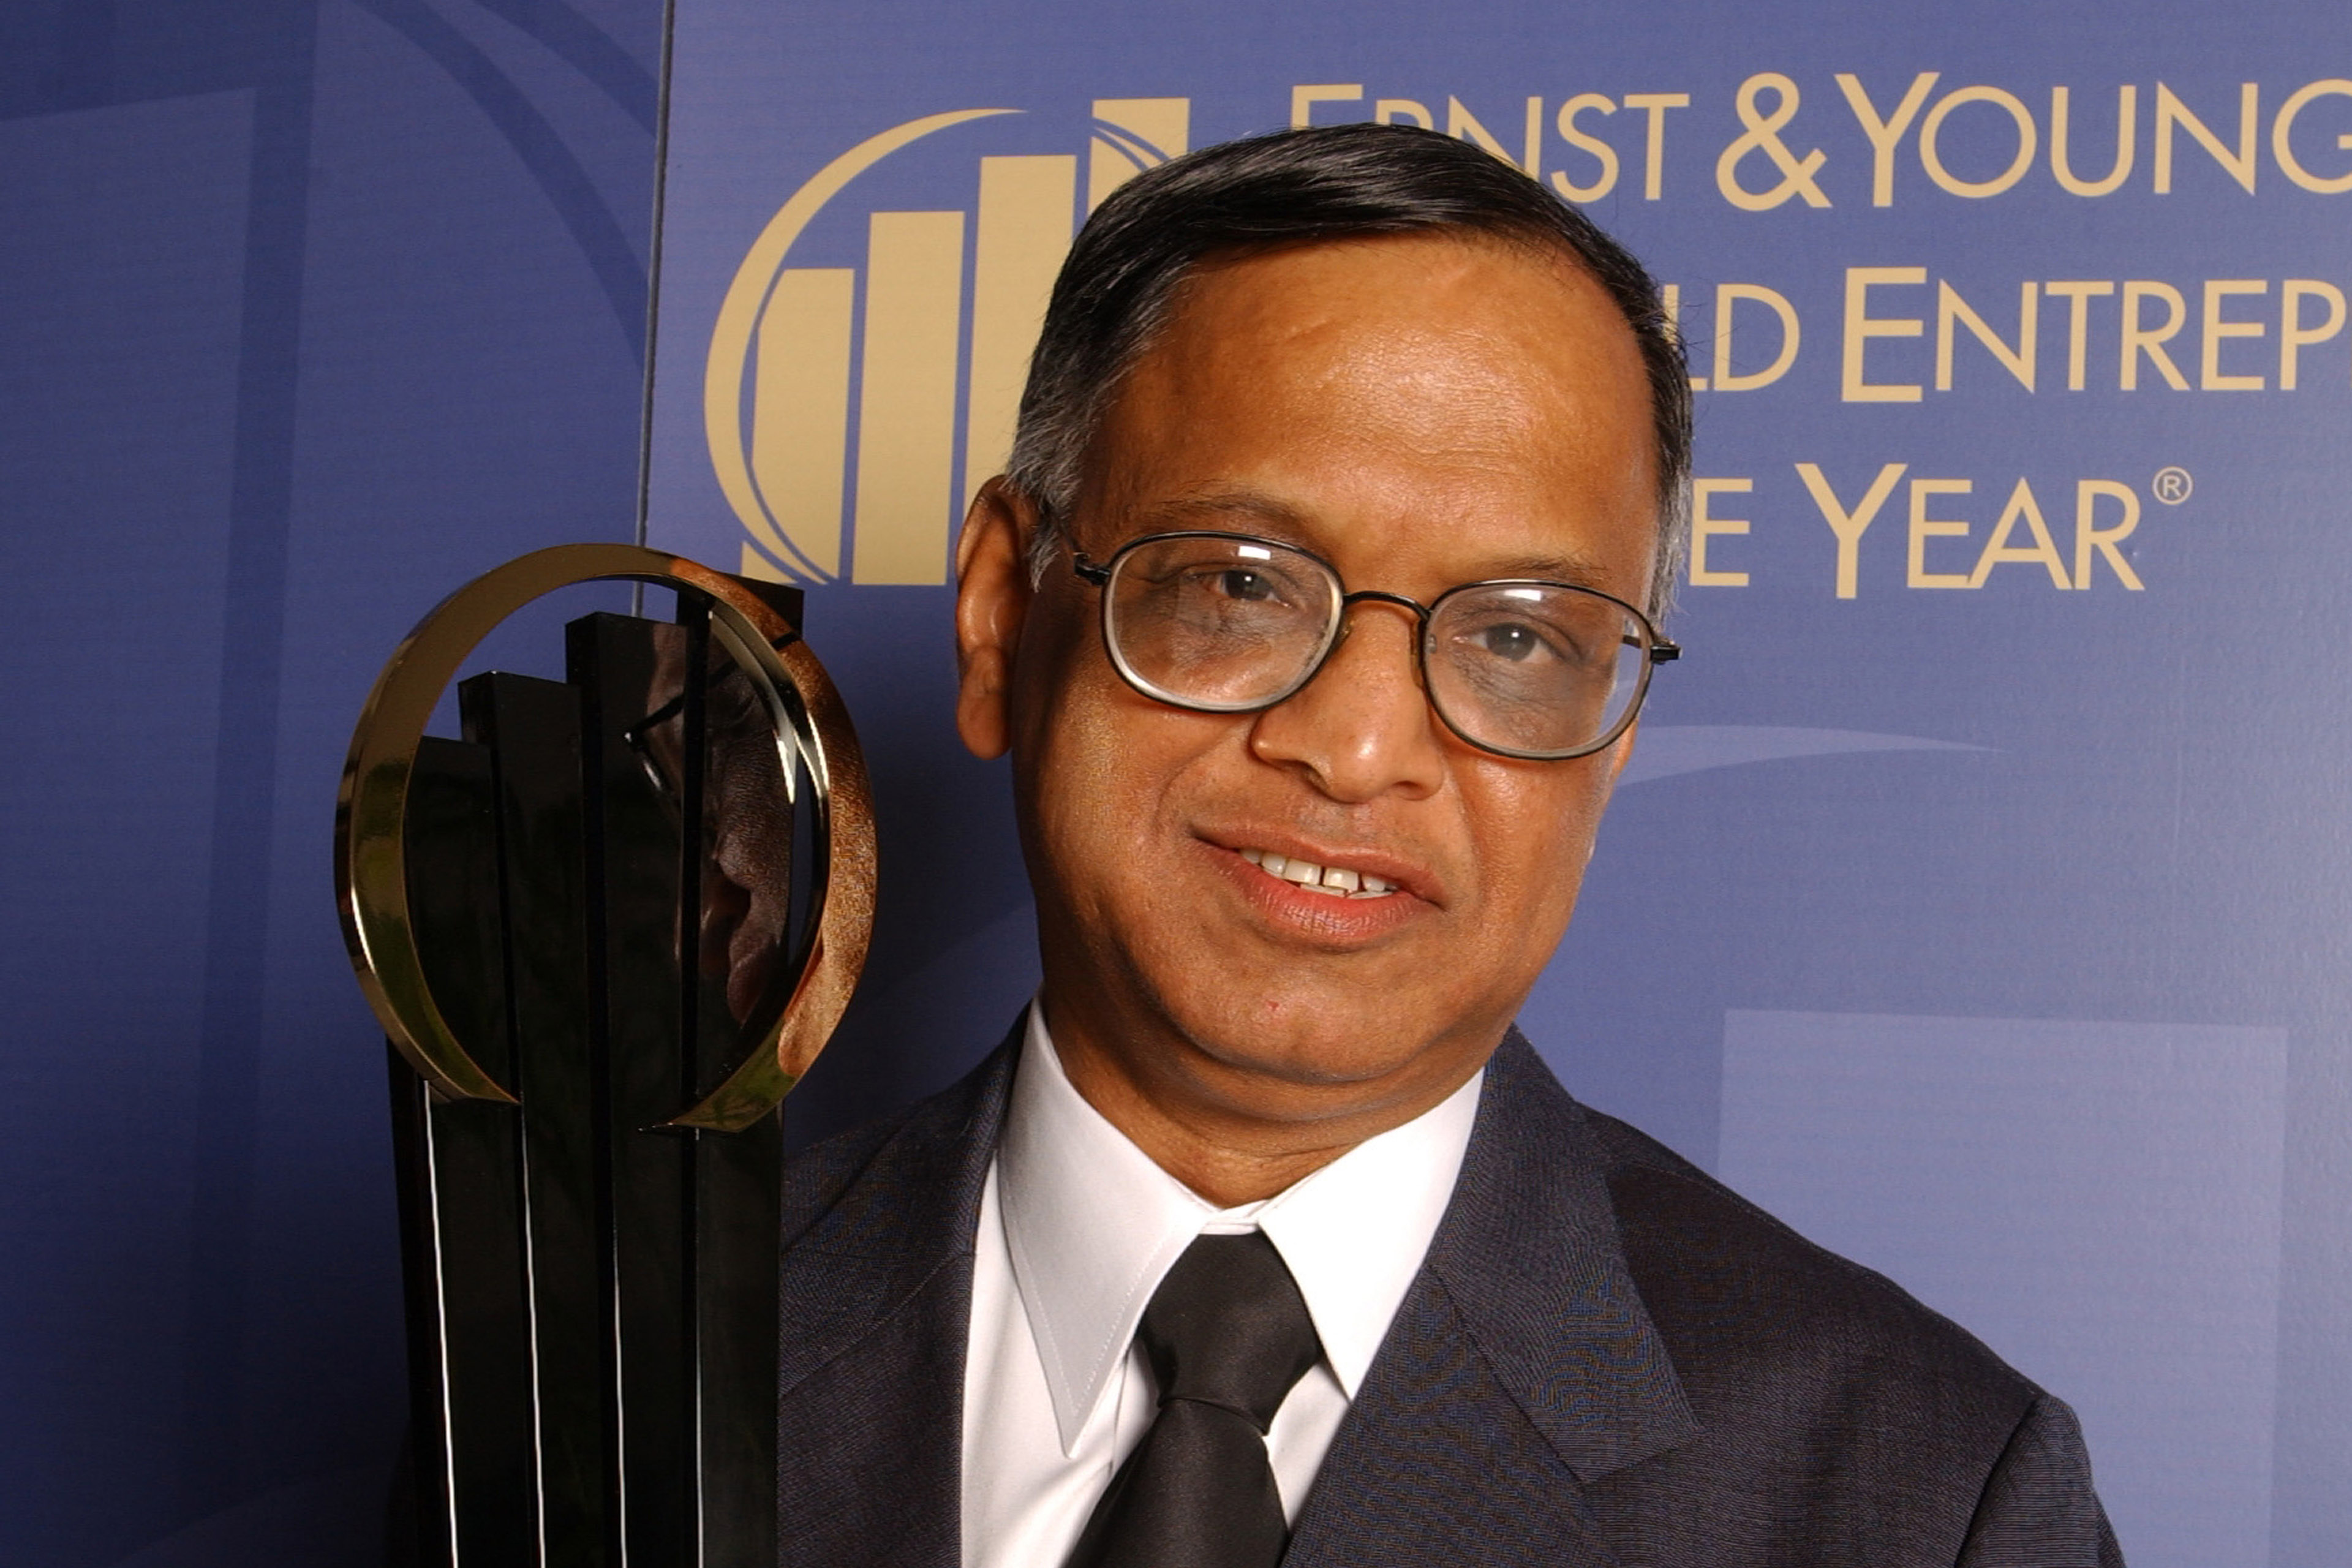 A photographic portrait of Narayana Murthy